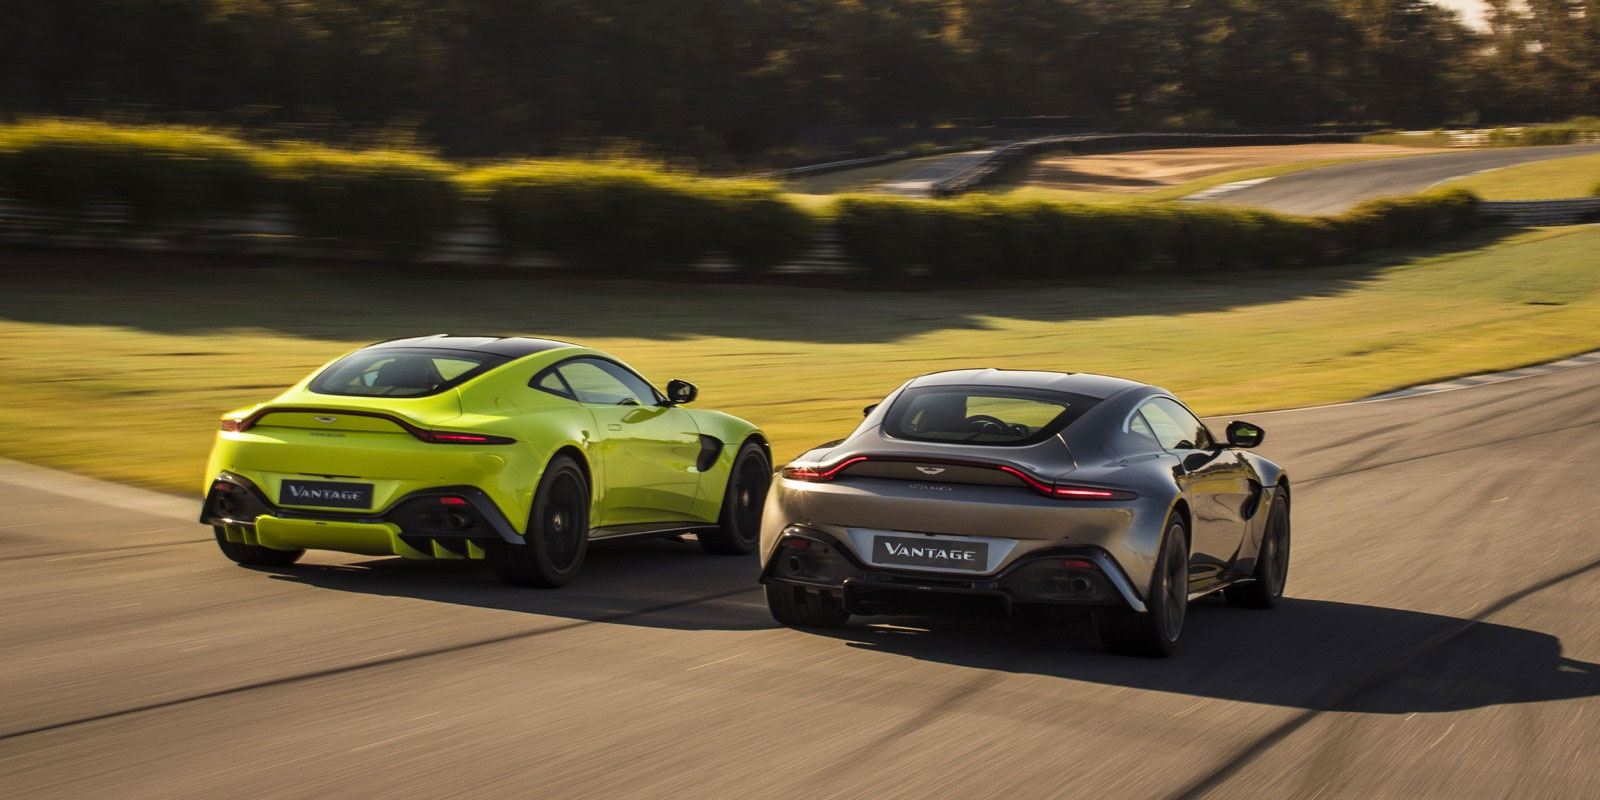 Aston Martin New Vantage - The Archetypal Hunter image 14